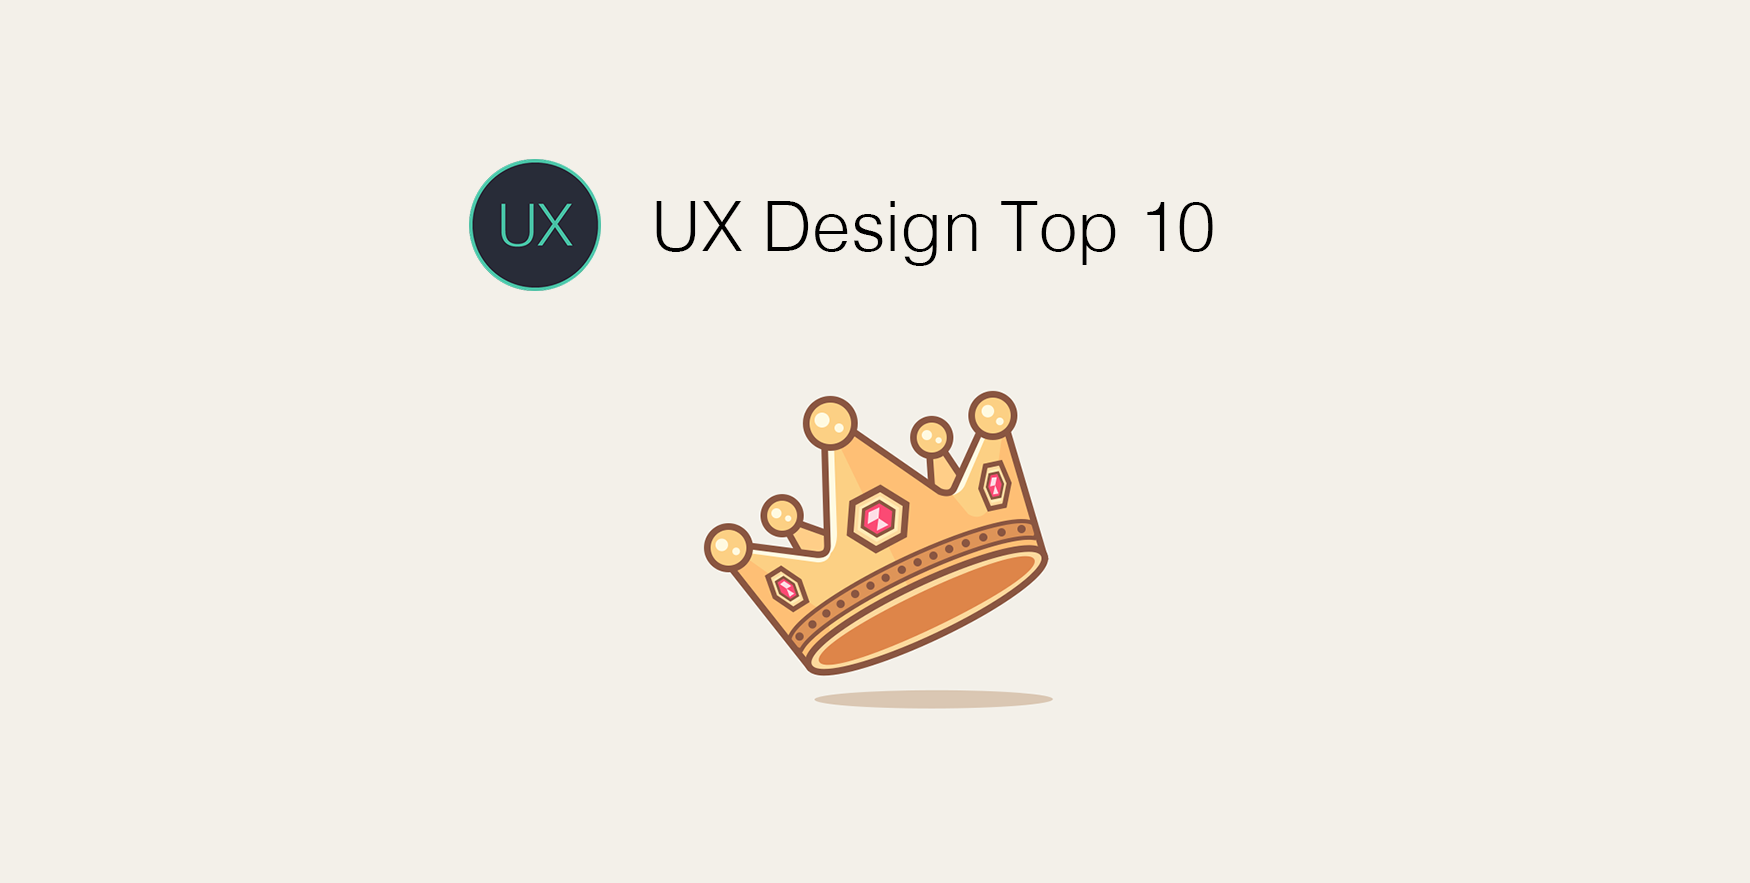 UX Design Top Ten Articles in August